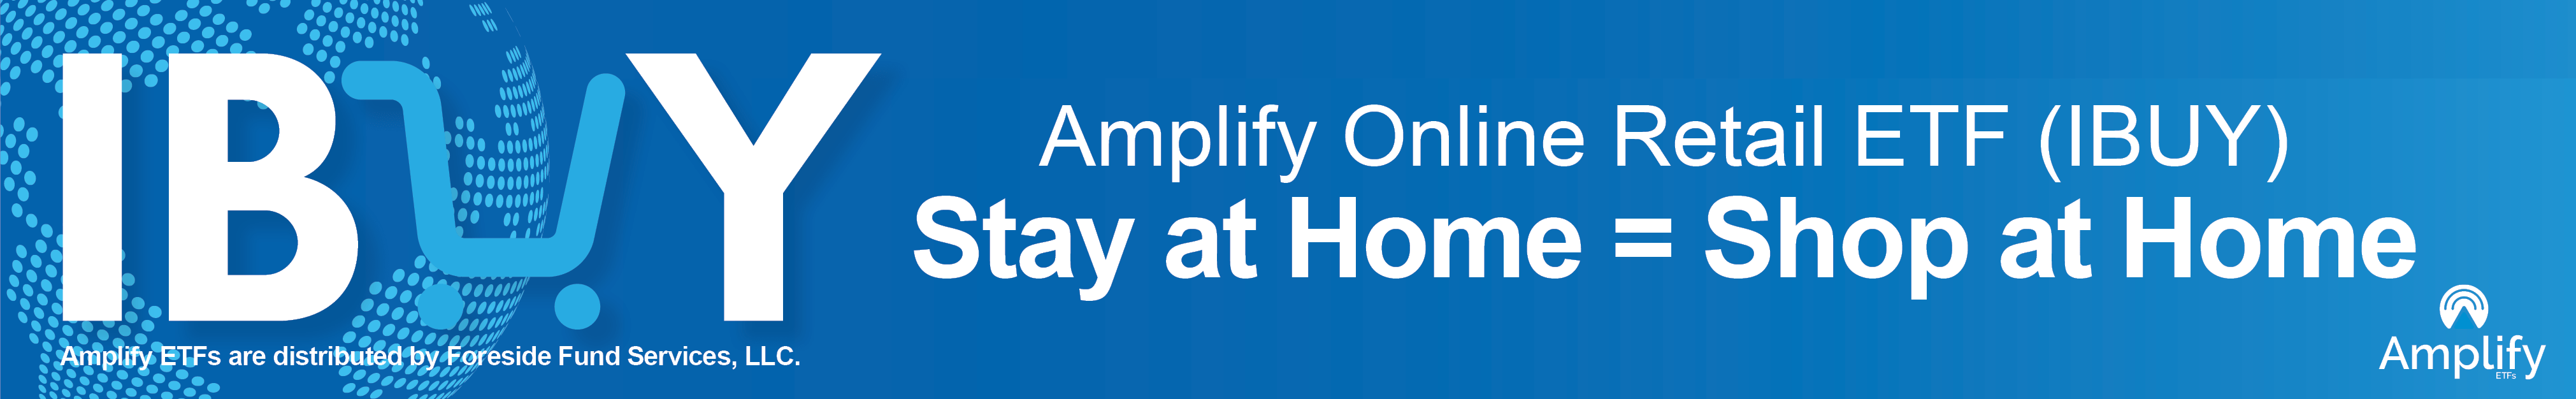 Amplify IBUY Stay at Home = Shop at Home